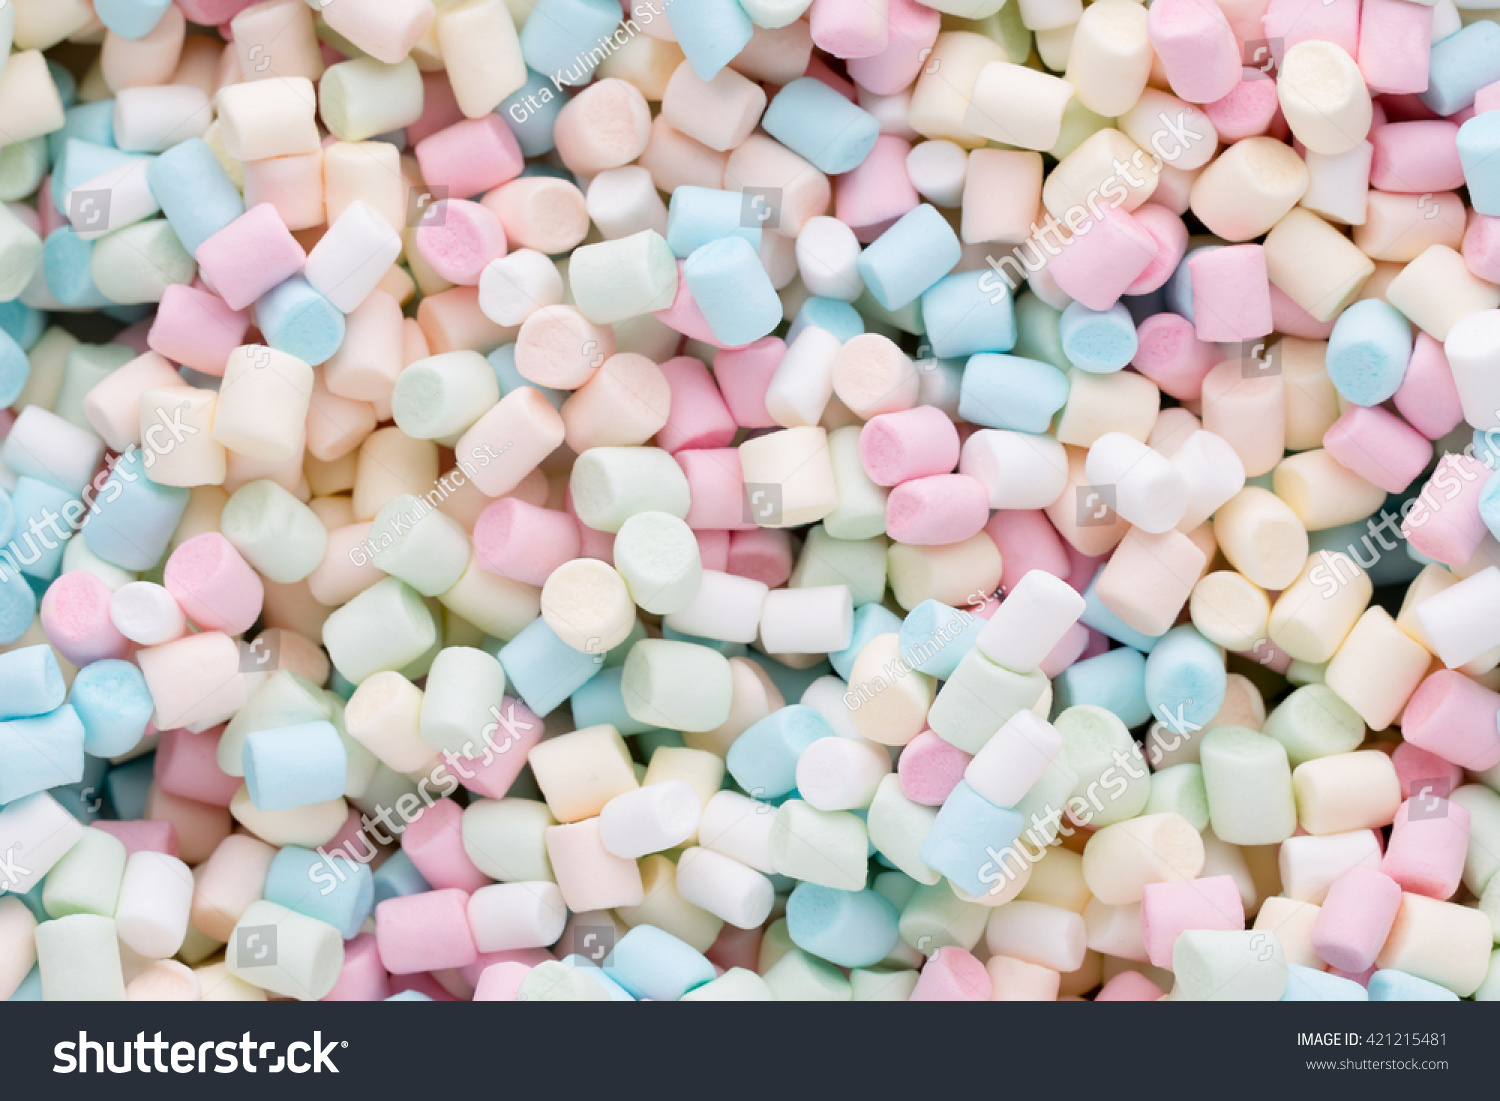 Marshmallows Background Or Texture Of Colorful Mini Marshmallow Id 421215481